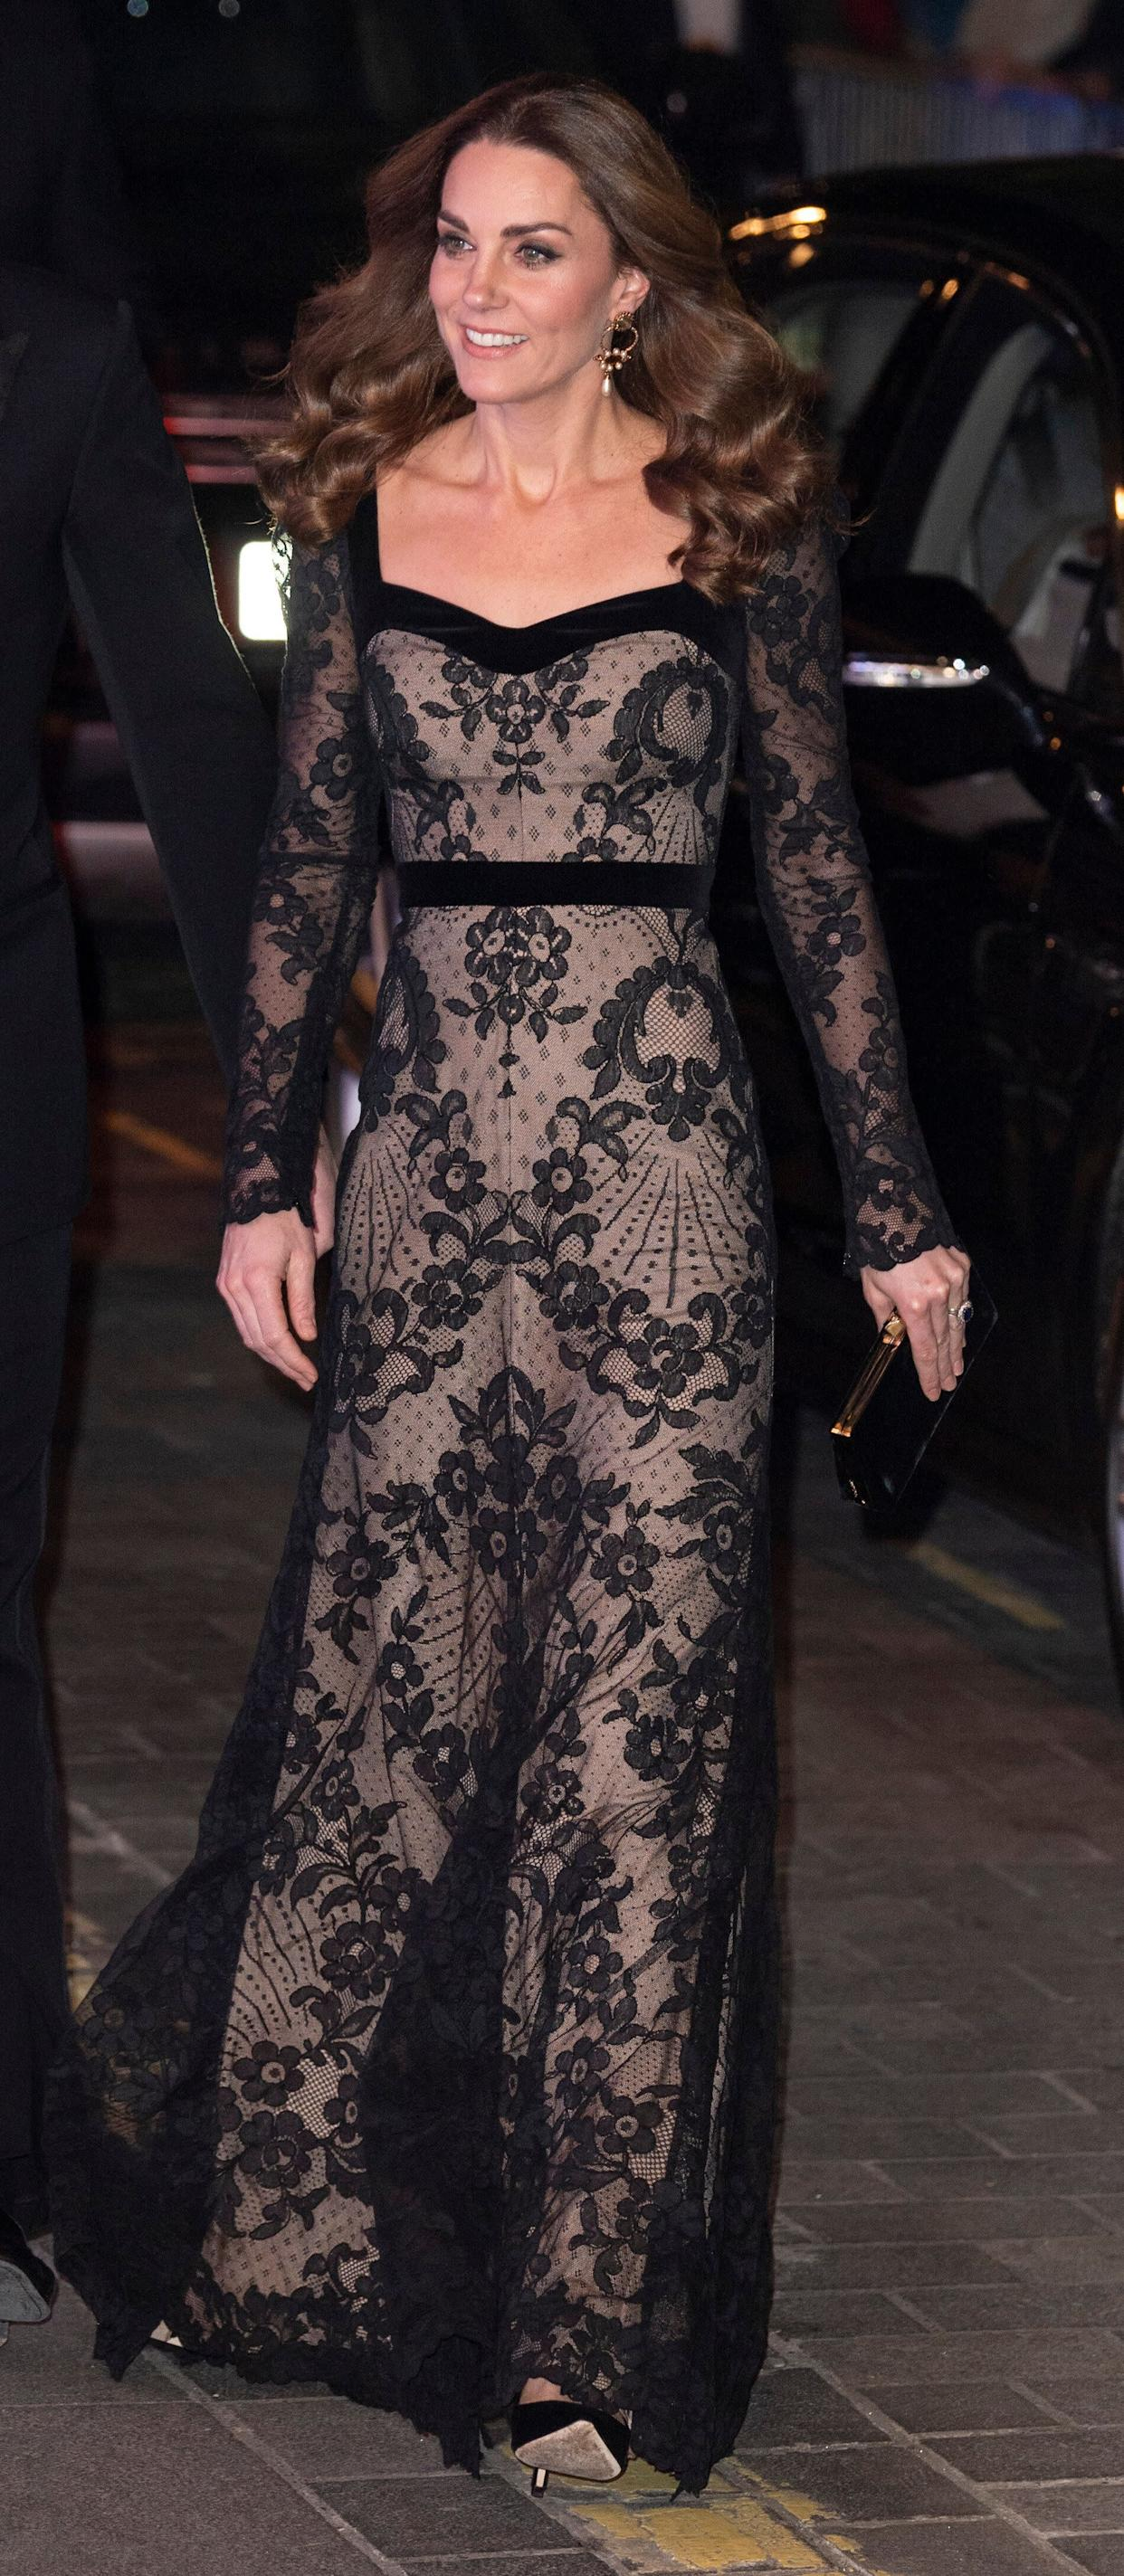 The Duchess of Cambridge at the Royal Variety Performance in London on Nov. 18.